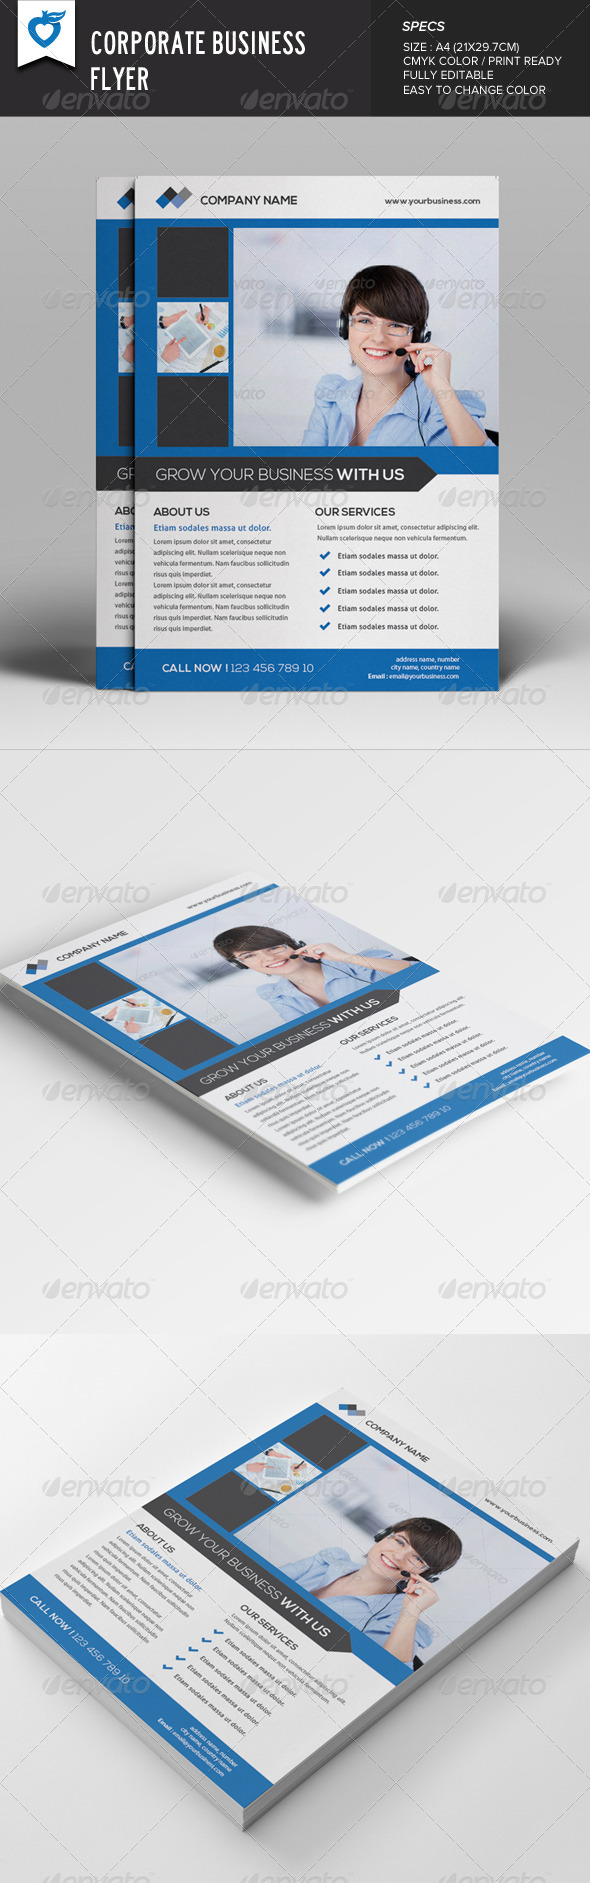 GraphicRiver Corporate Business Flyer v7 7948921